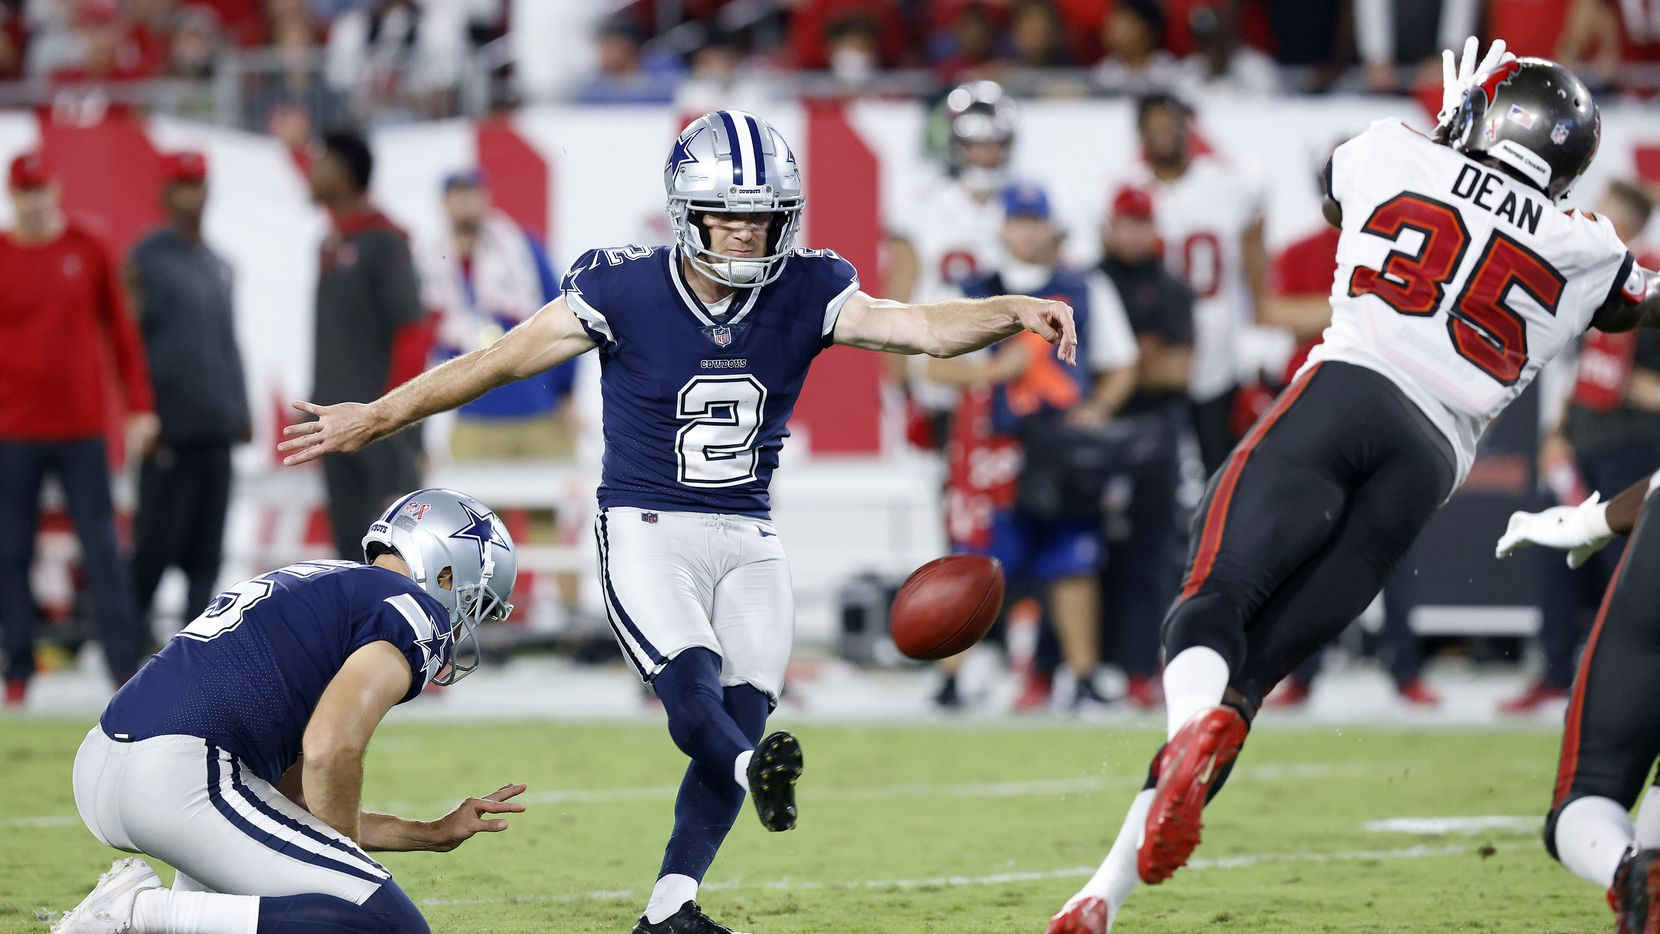 Dallas Cowboys place kicker Greg Zuerlein (2) kicks the go-ahead field late in the fourth quarter as Tampa Bay Buccaneers cornerback Jamel Dean (35) makes a diving block attempt at Raymond James Stadium in Tampa, Florida, Thursday, September 9, 2021.